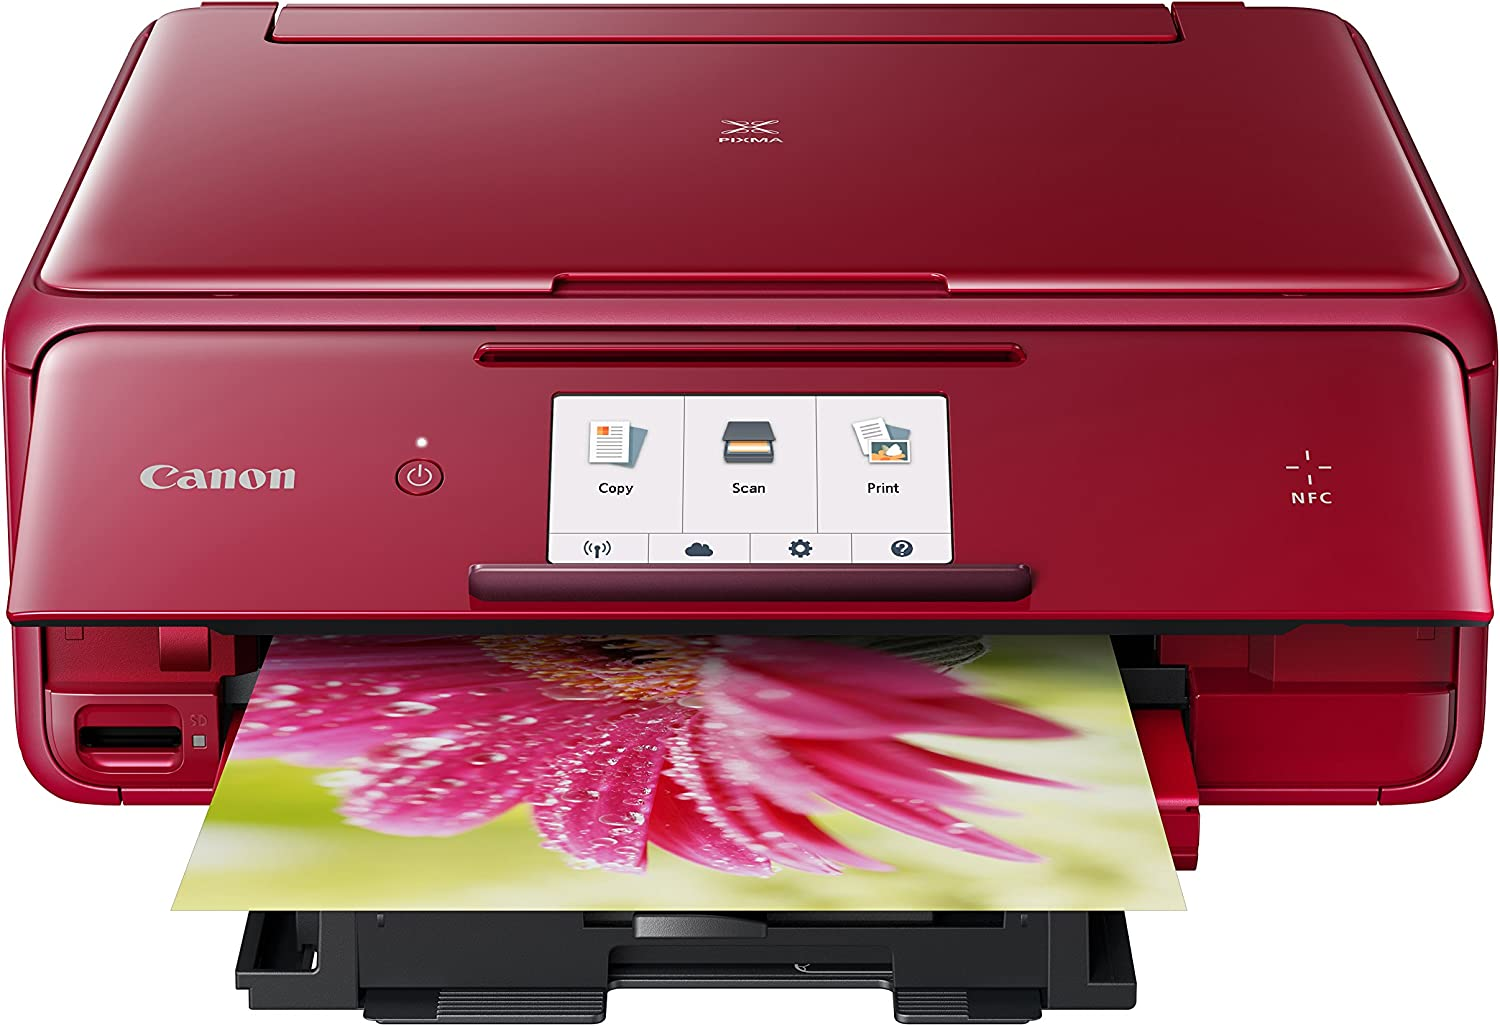 Canon USA 1369C042 Wireless Color Photo Printer with Scanner & Copier 4.3 Red